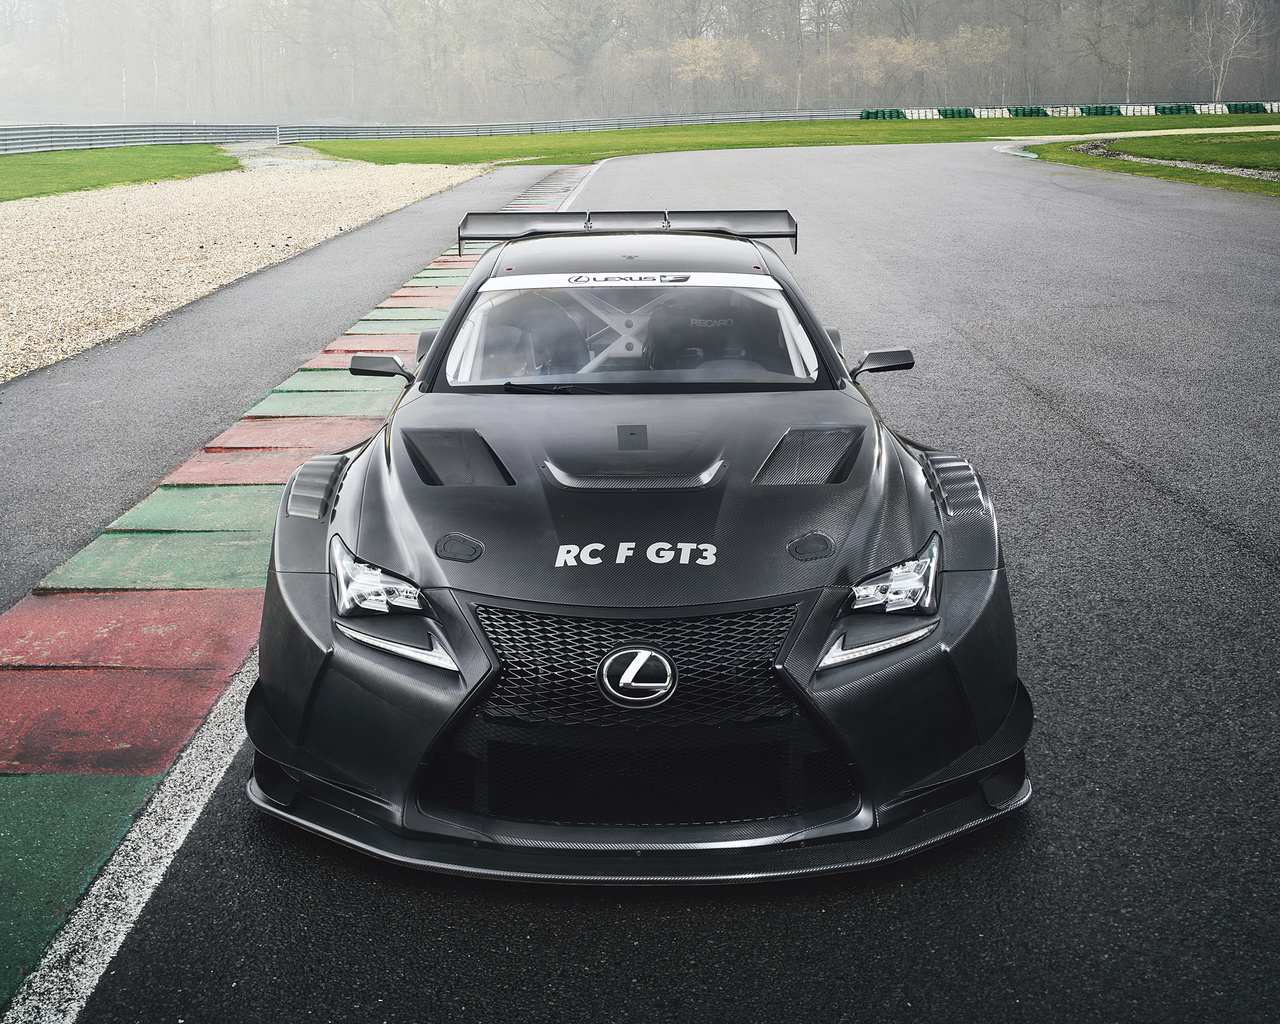 lexus, rc f, gt3, racing car, tuning, carbon